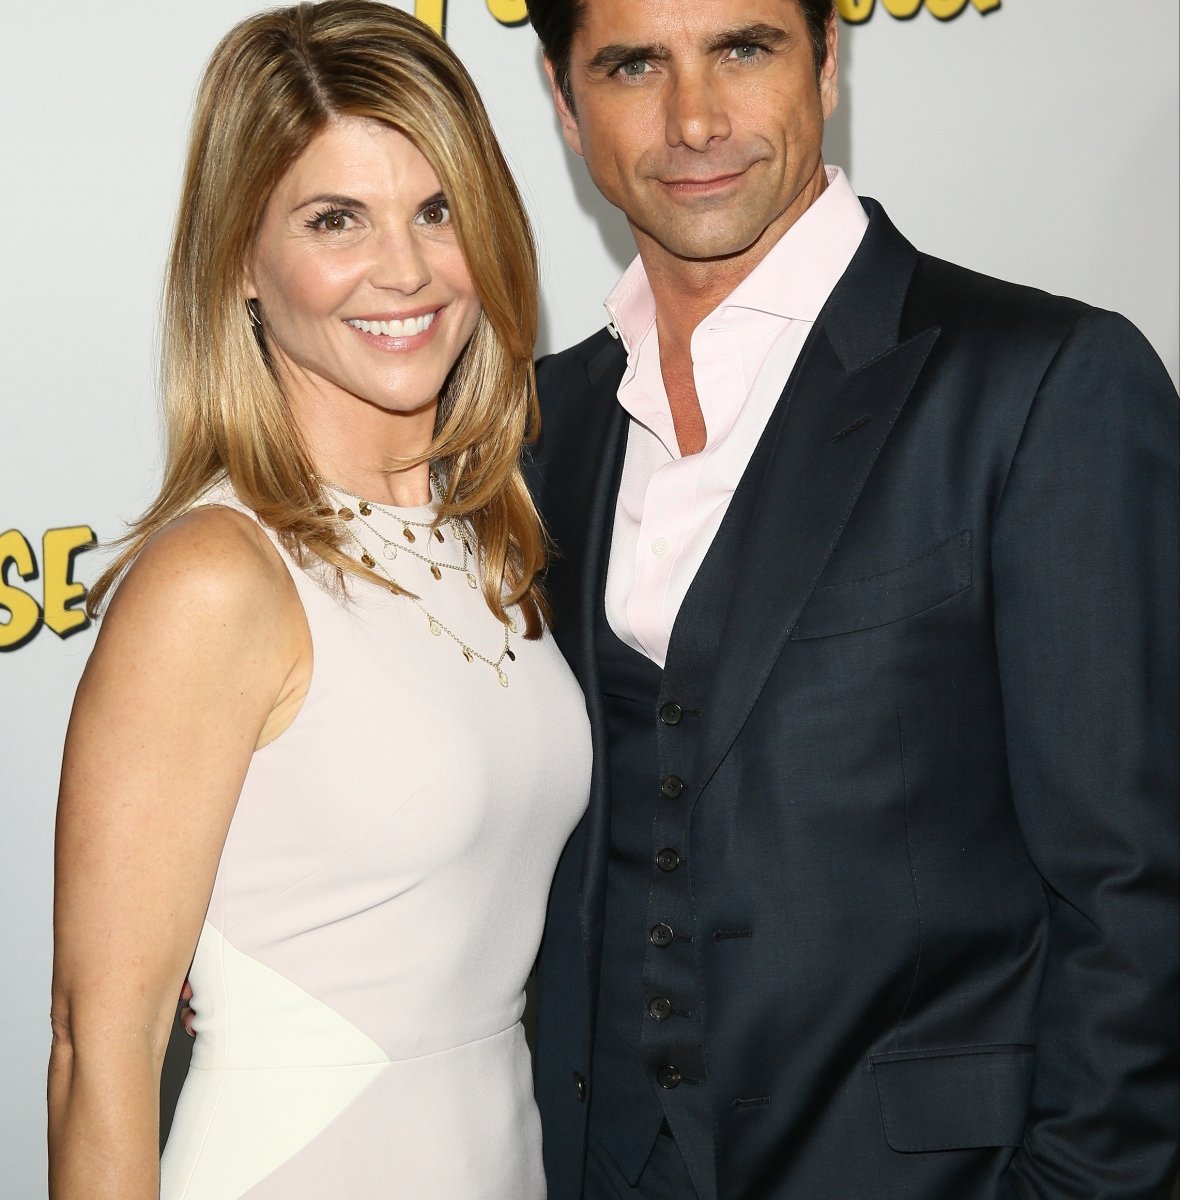 lori loughlin john stamos getty images